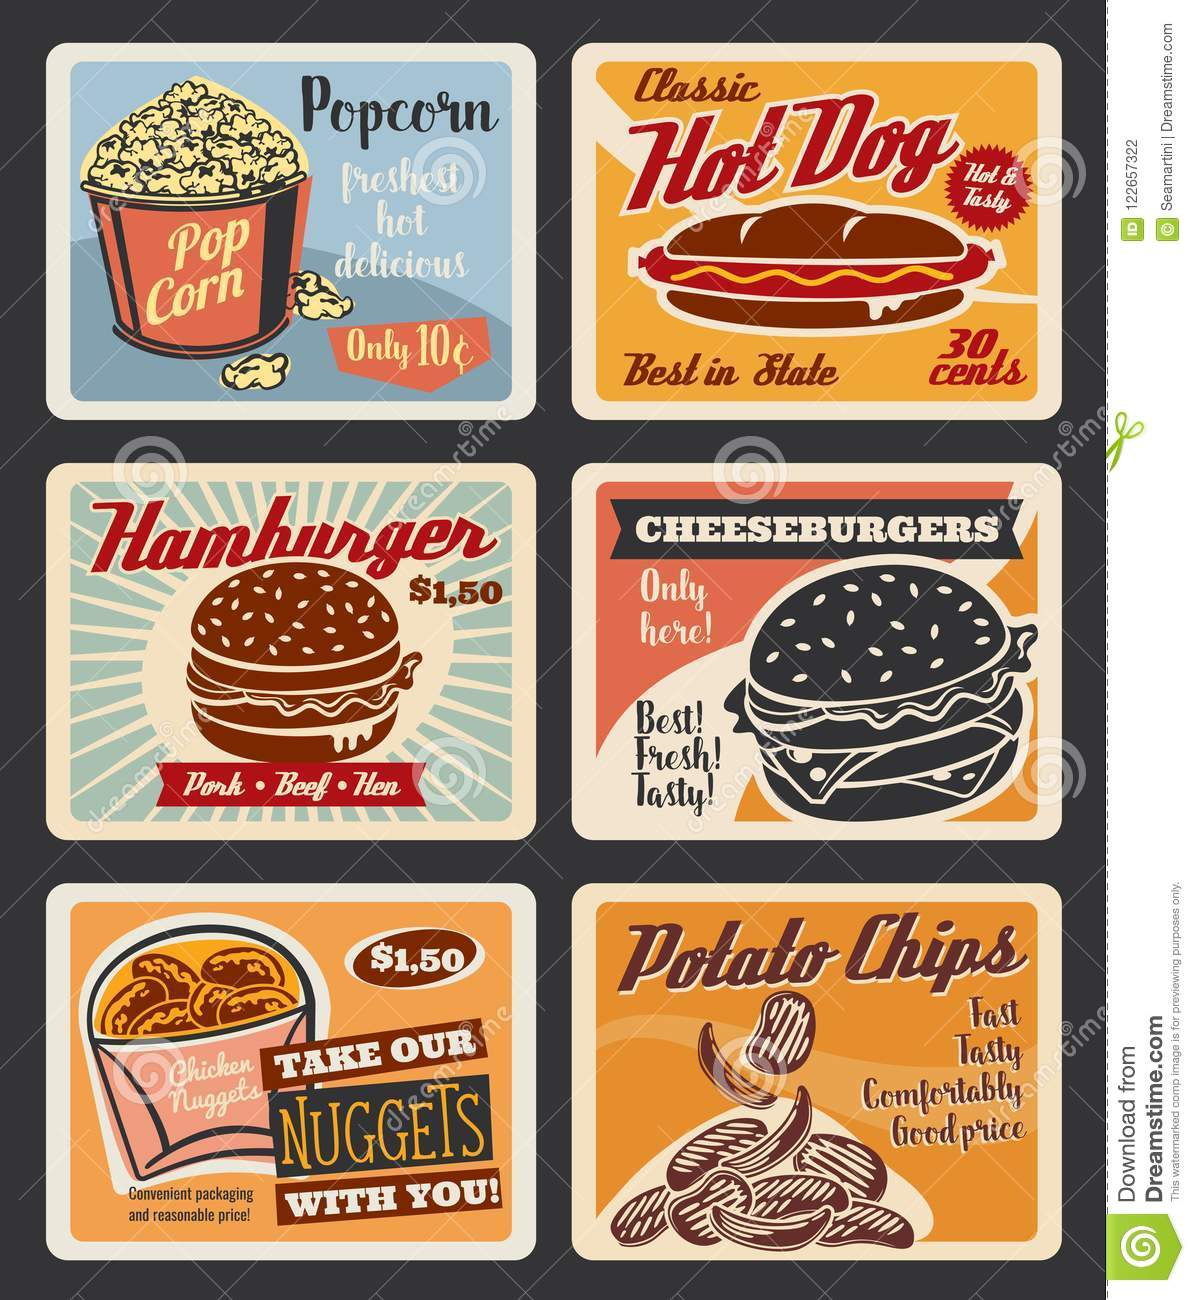 Vector Retro Fast Food Burgers And Snacks Posters Stock Vector ...